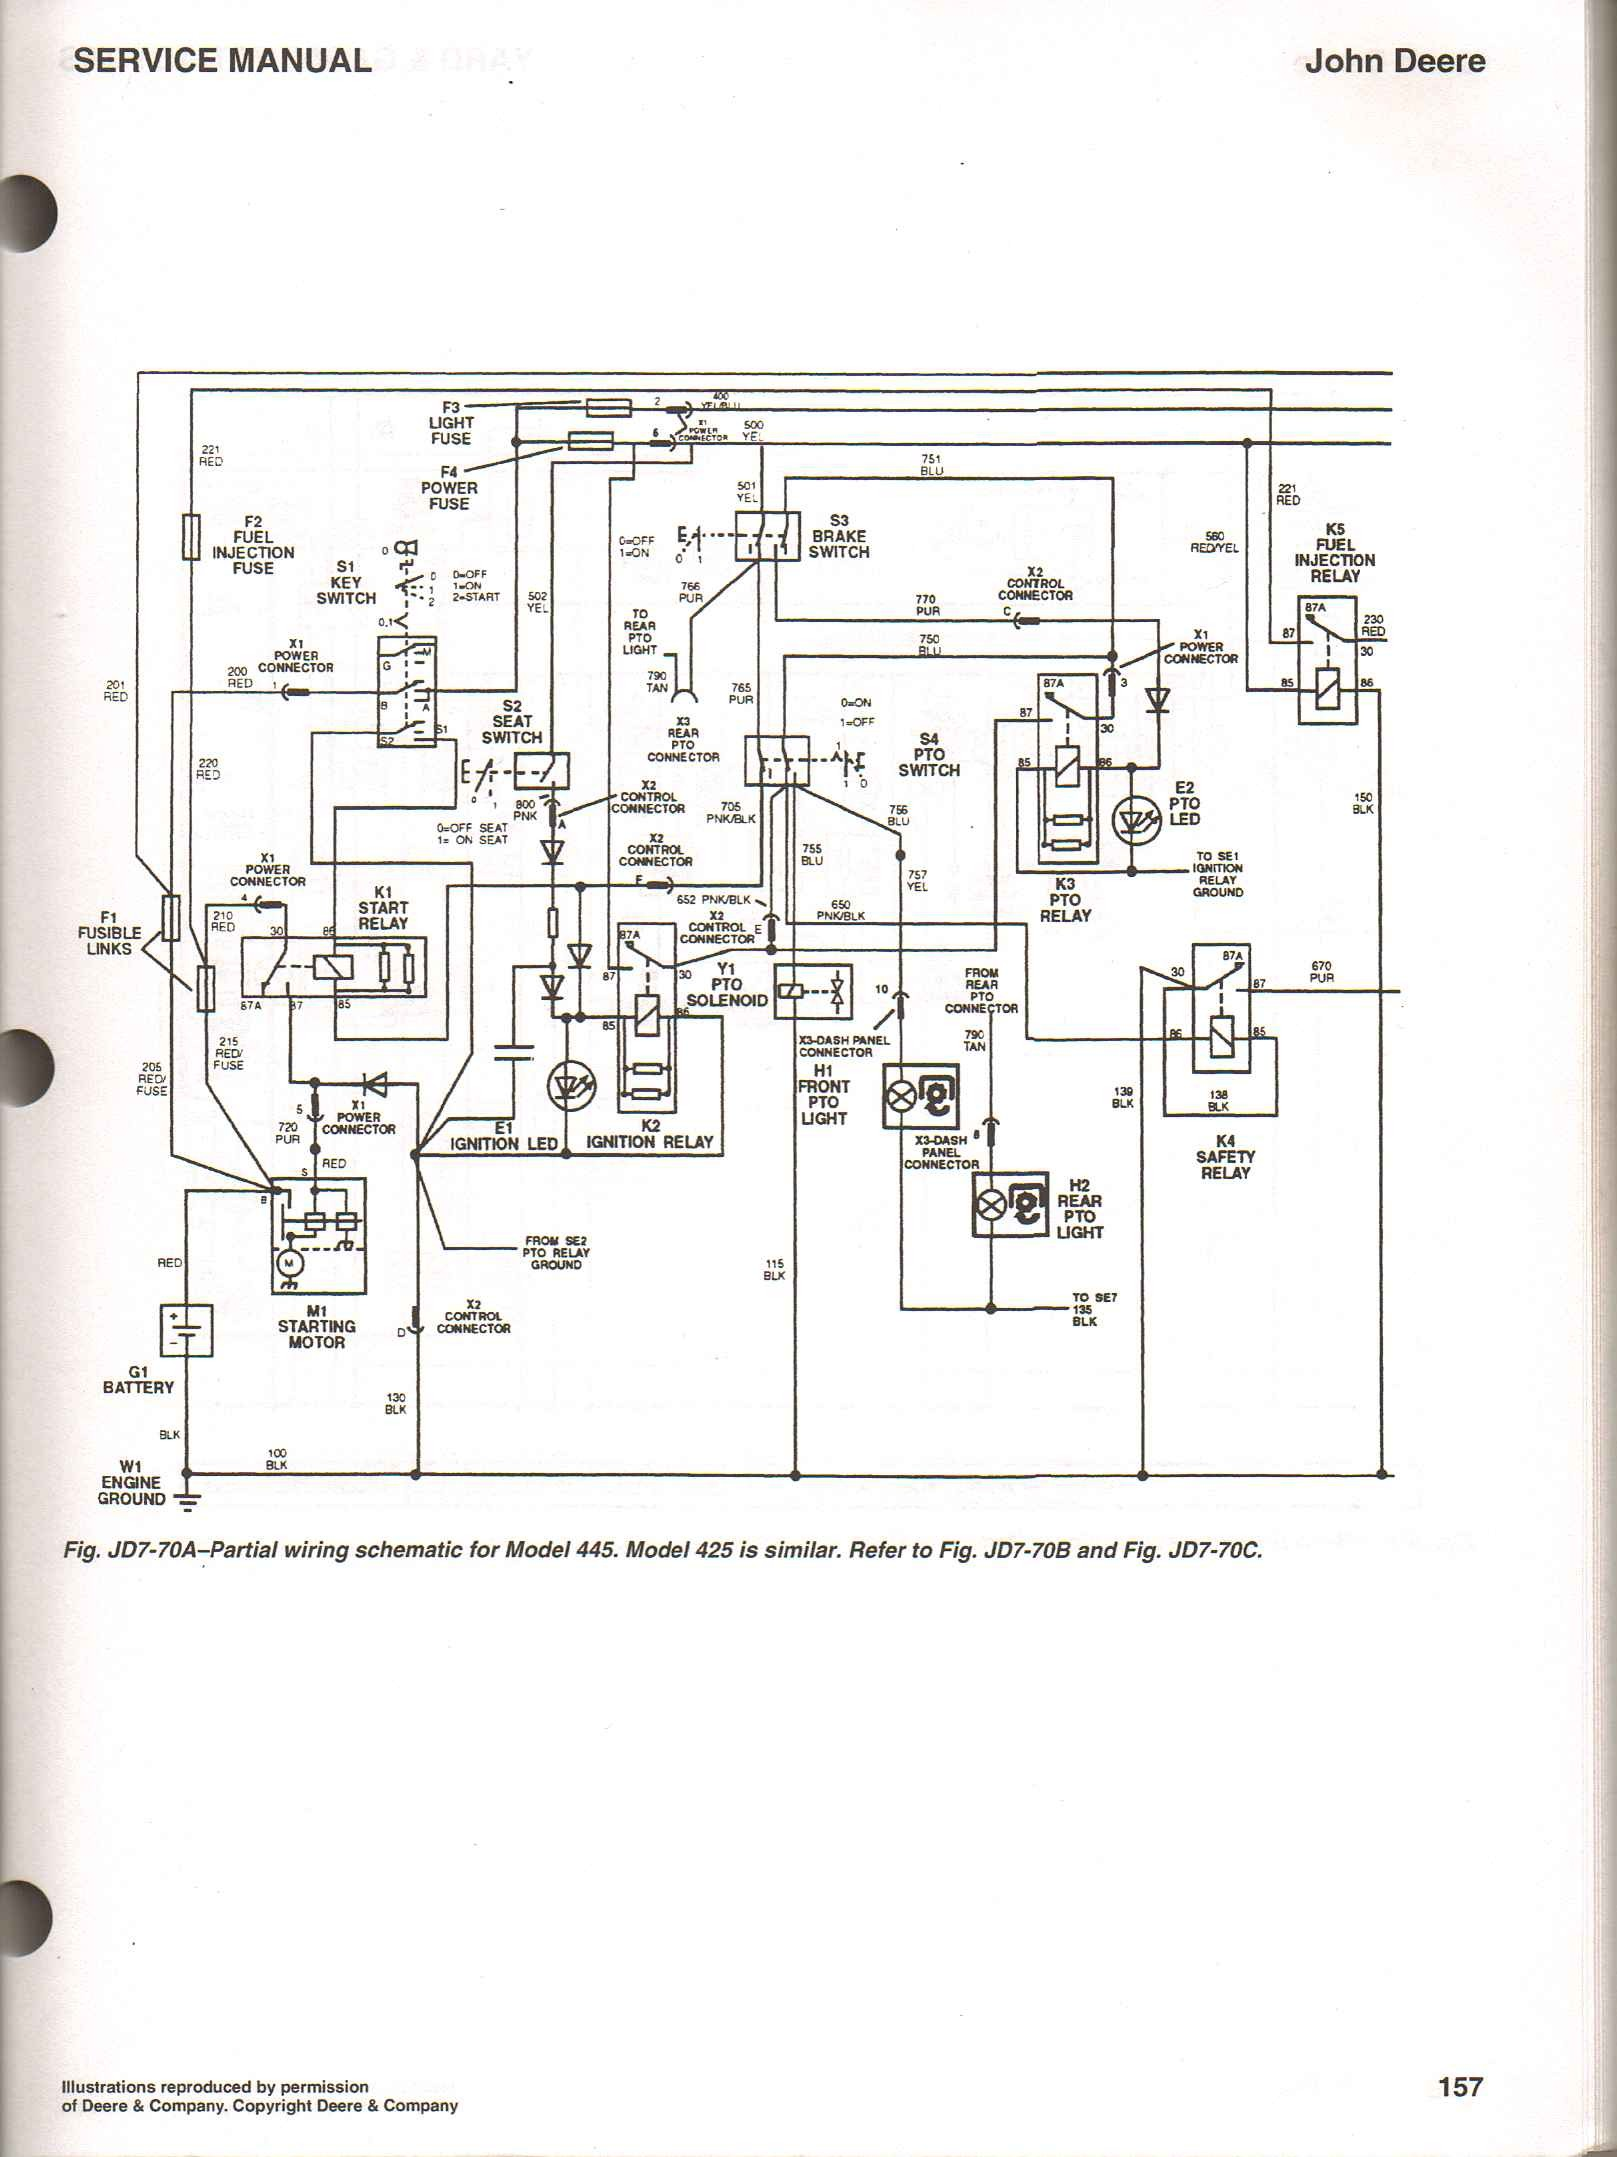 John Deere 345 Electrical Schematic I Ve Got A Deere 425 with No Spark the Led for Ignition On Of John Deere 345 Electrical Schematic